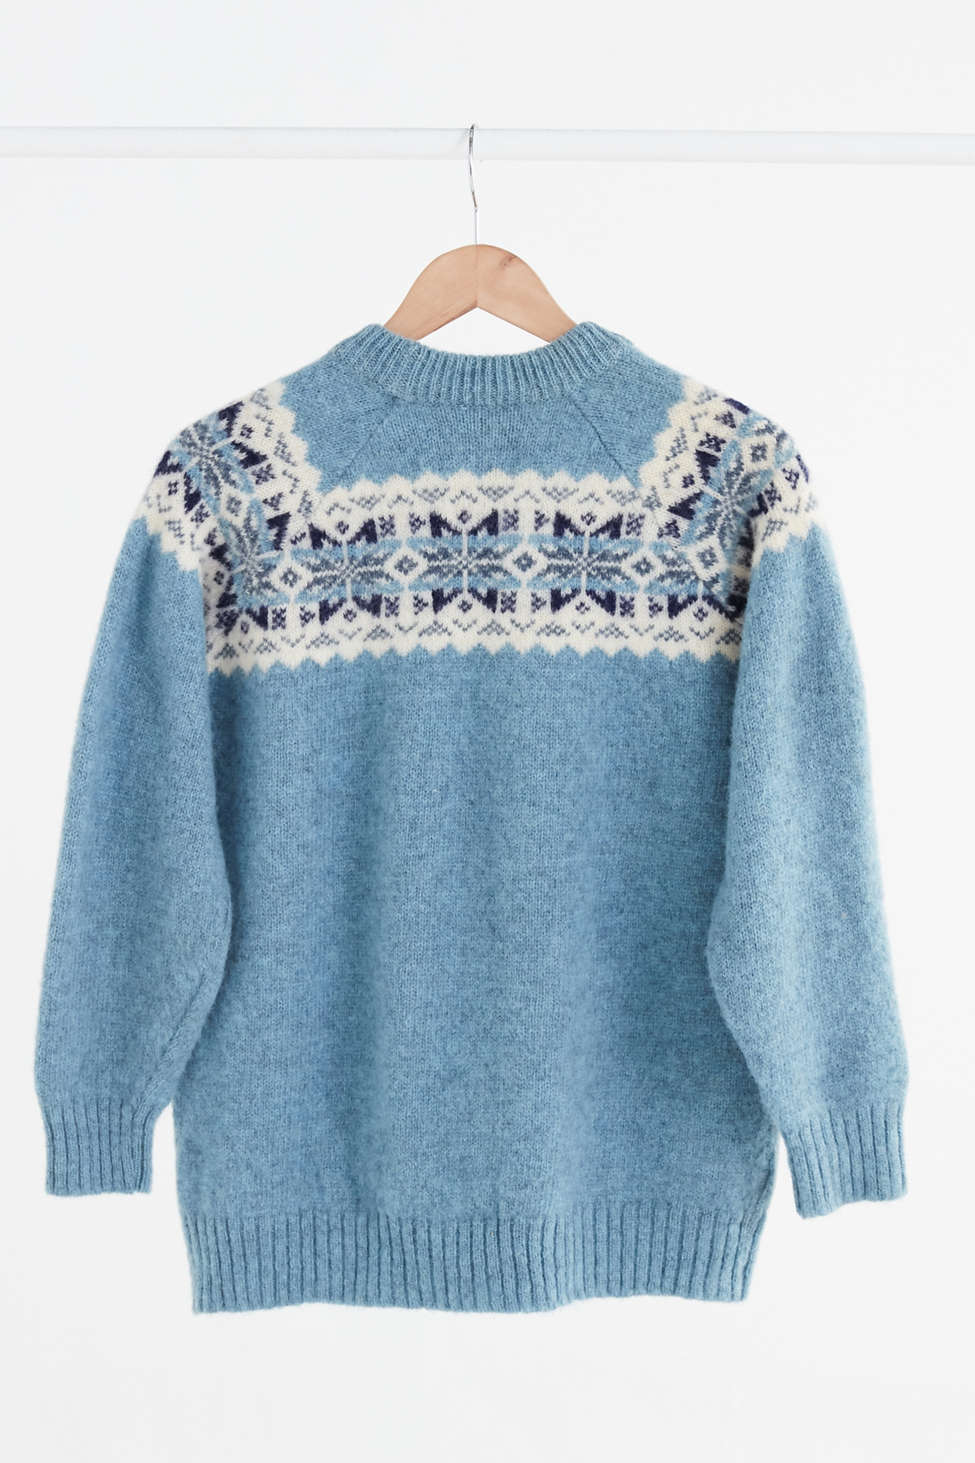 Vintage Light Blue Fair Isle Ski Sweater | Urban Outfitters Canada